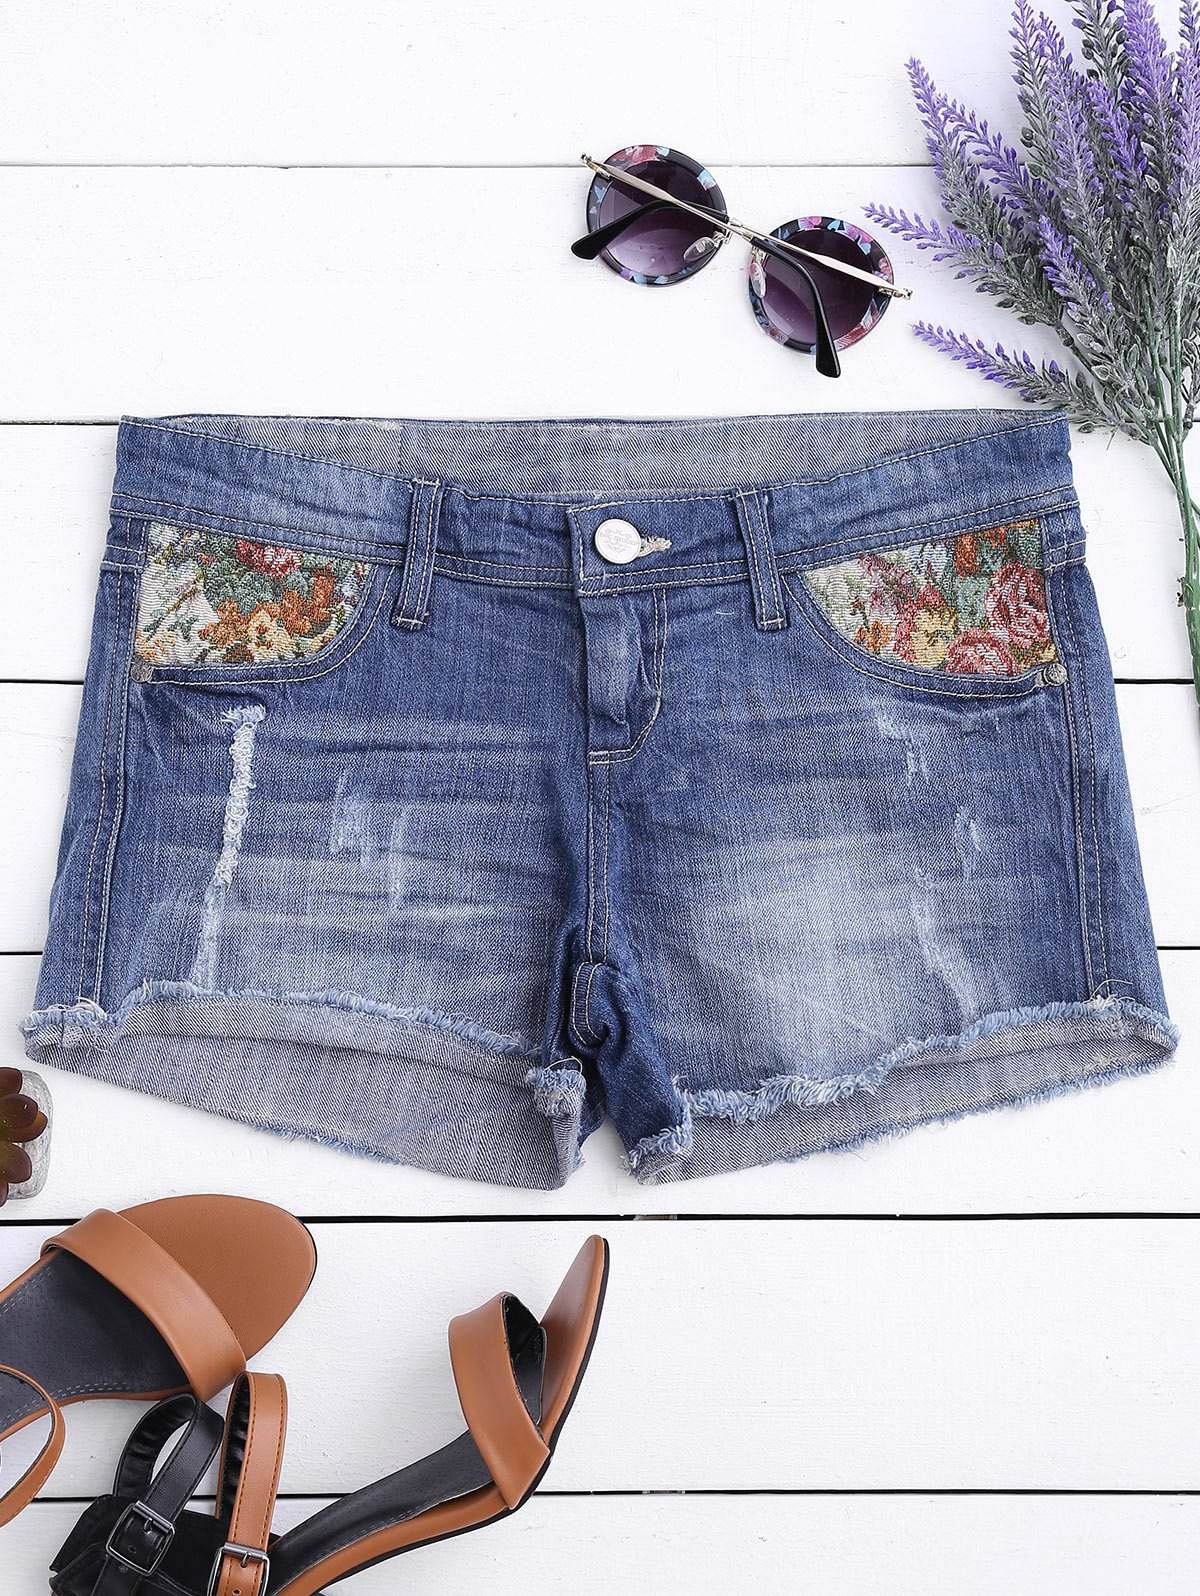 Graphic Cutoffs Distressed Denim Shorts 217376706